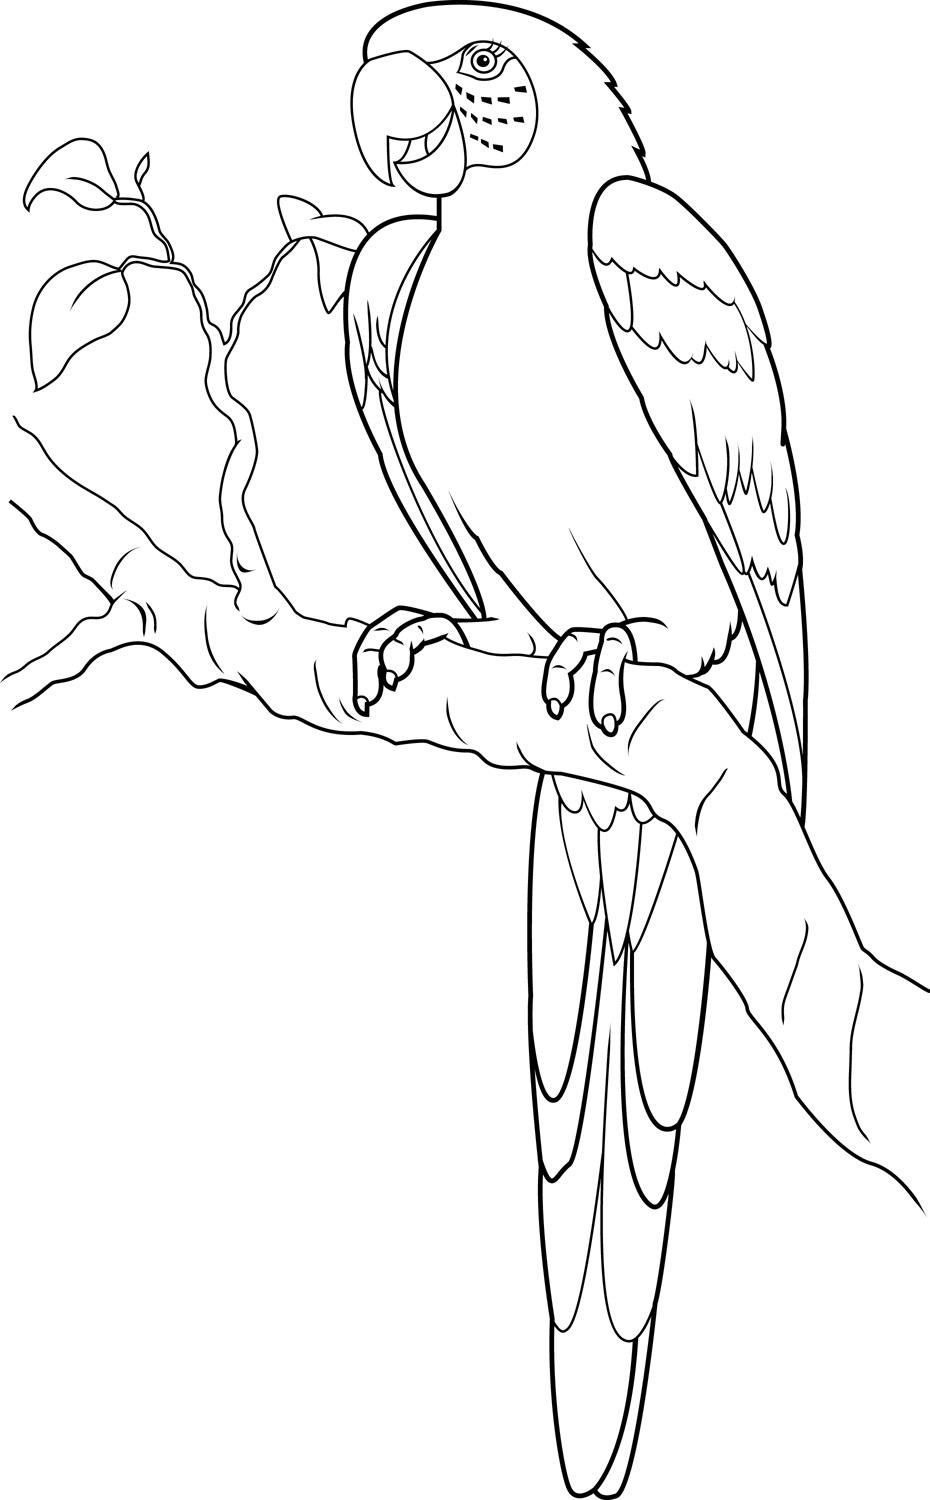 Free Macaw Coloring Pages On The Tree printable